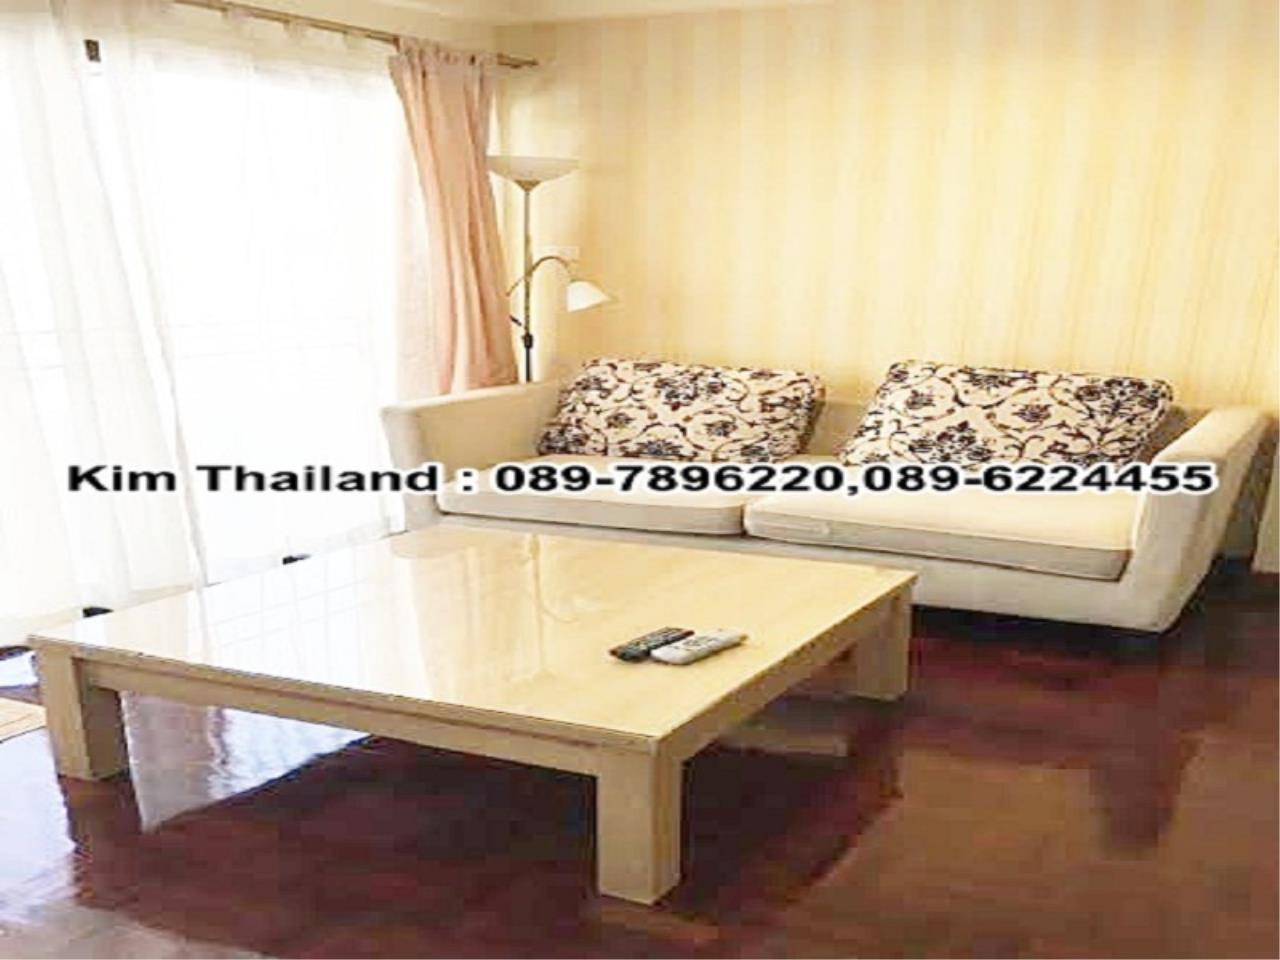 BKKcondorental Agency's For rent, Condo Saranjai Mansion. Area 63 sq.m. 1 bedroom. Rent 20,000baht/month 1